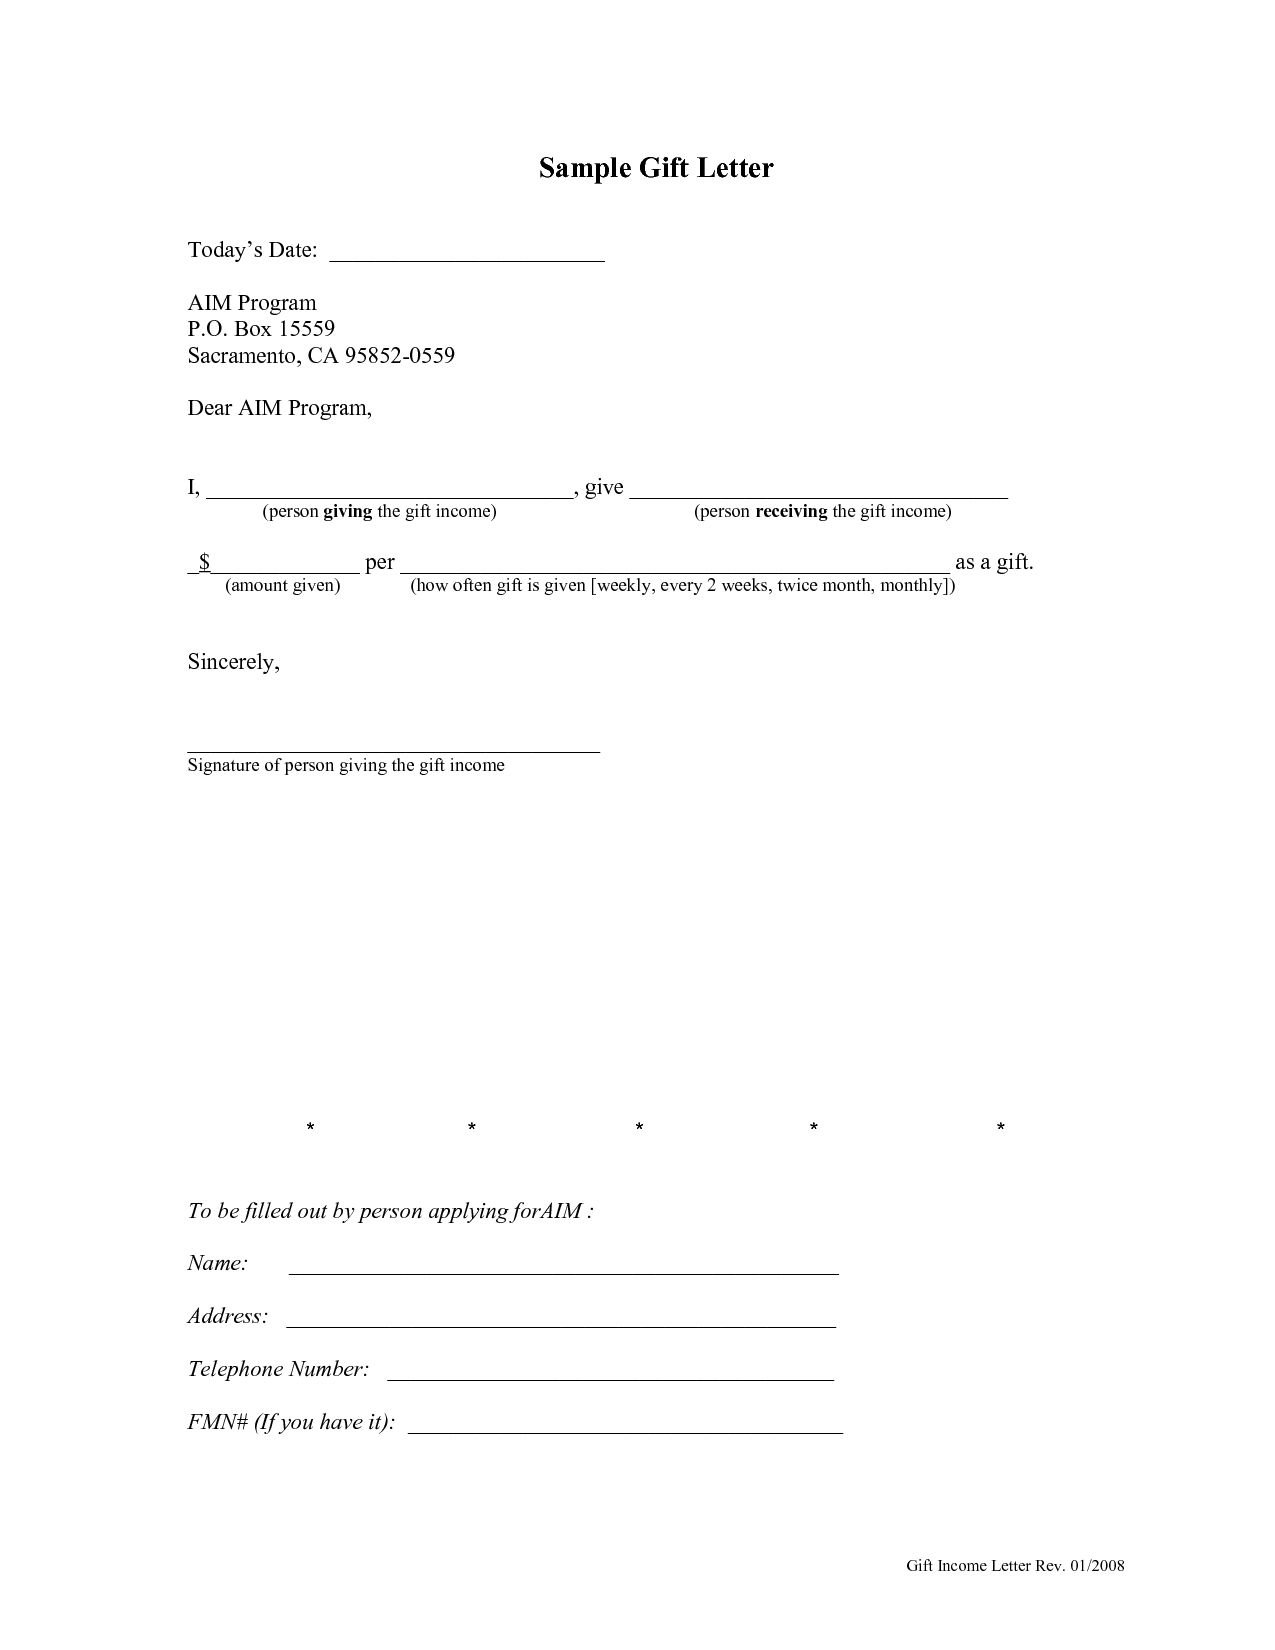 Gift Letter Mortgage Template - How to Write A Gift Letter for Mortgage Image Collections Letter